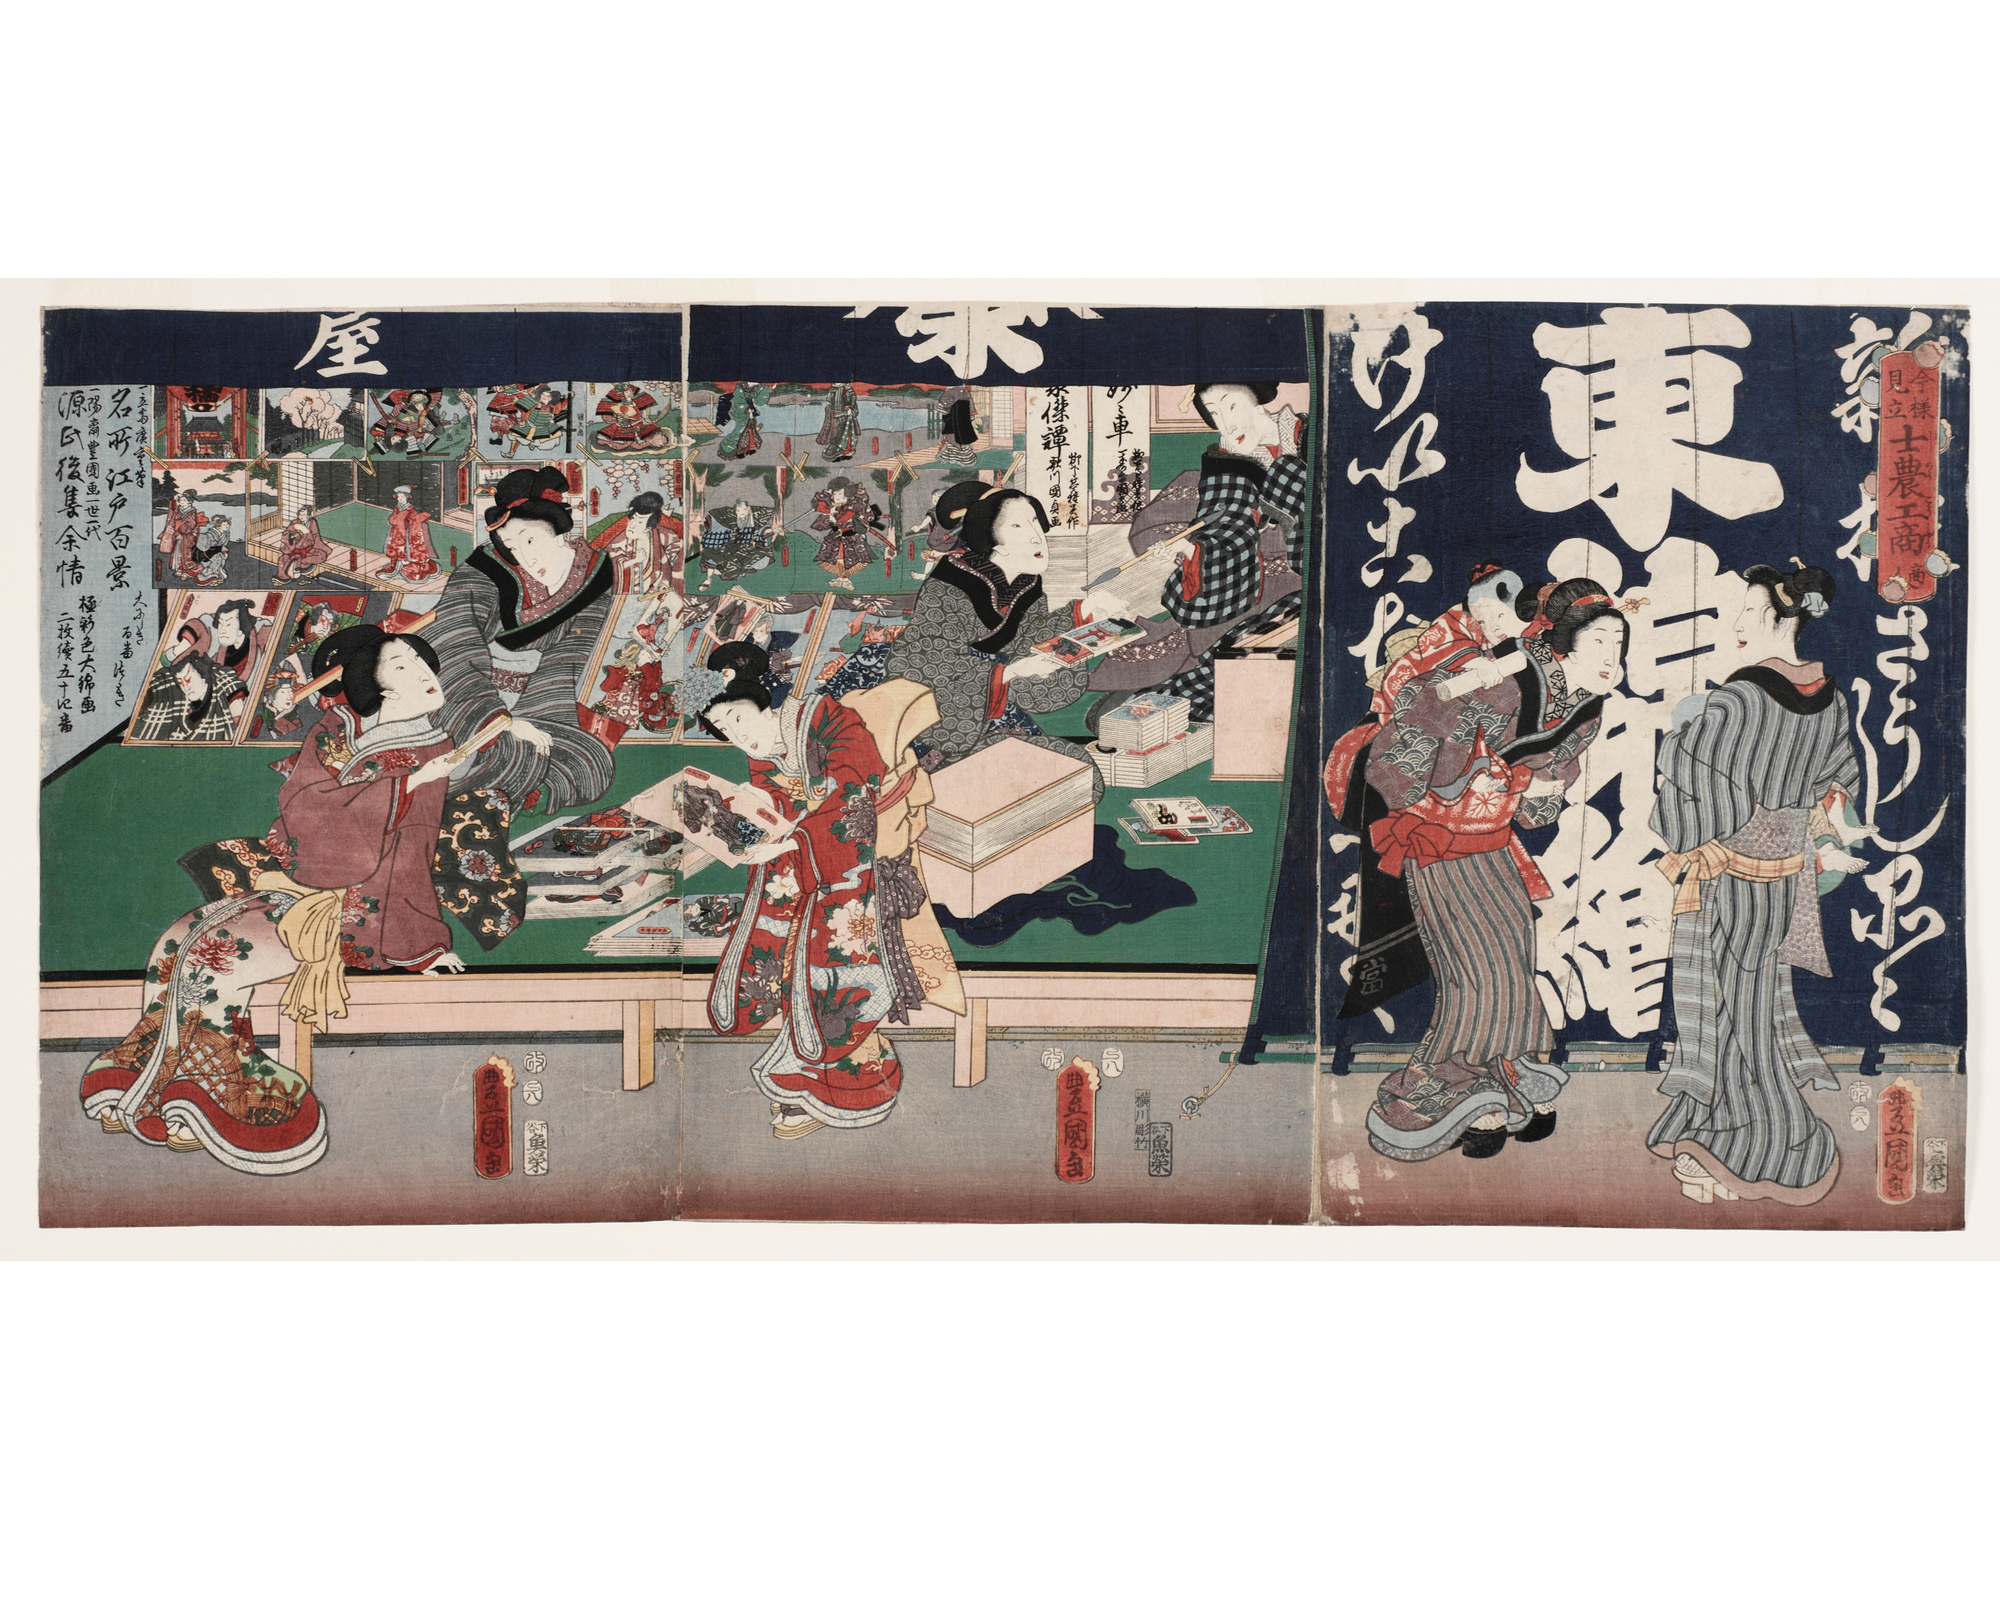 Utagawa Toyokuni III, Japanese (1786-1865). Merchant from series of the Four Classes of Society, 1857, woodcut printed in color on paper, Transfer from Hillyer Art Library, SC 1980.23.1